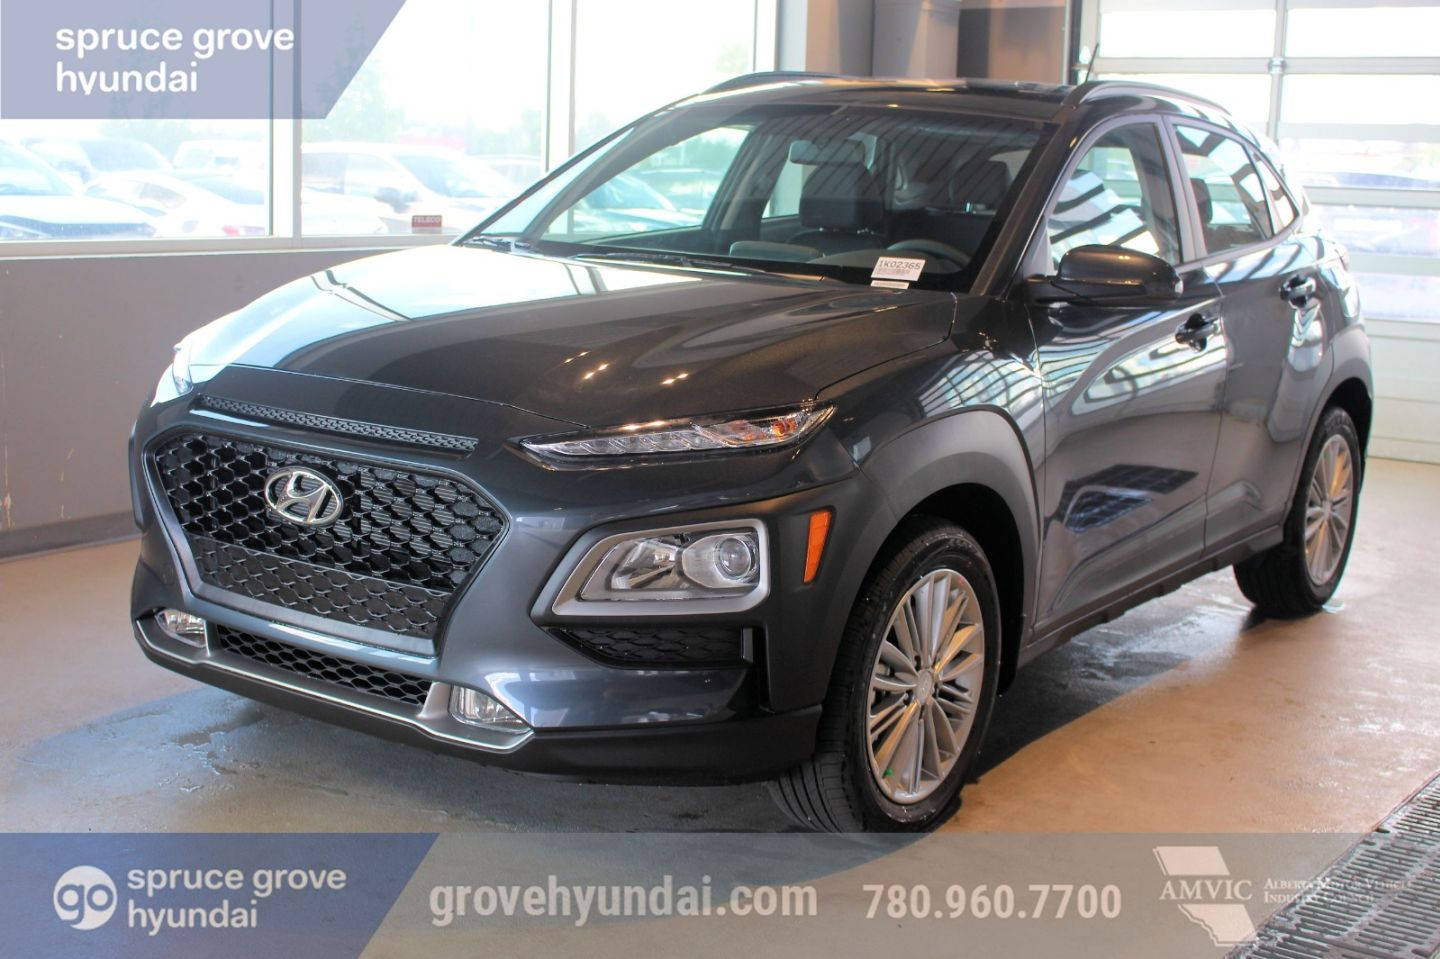 2021 Hyundai Kona Preferred for sale in Spruce Grove, Alberta